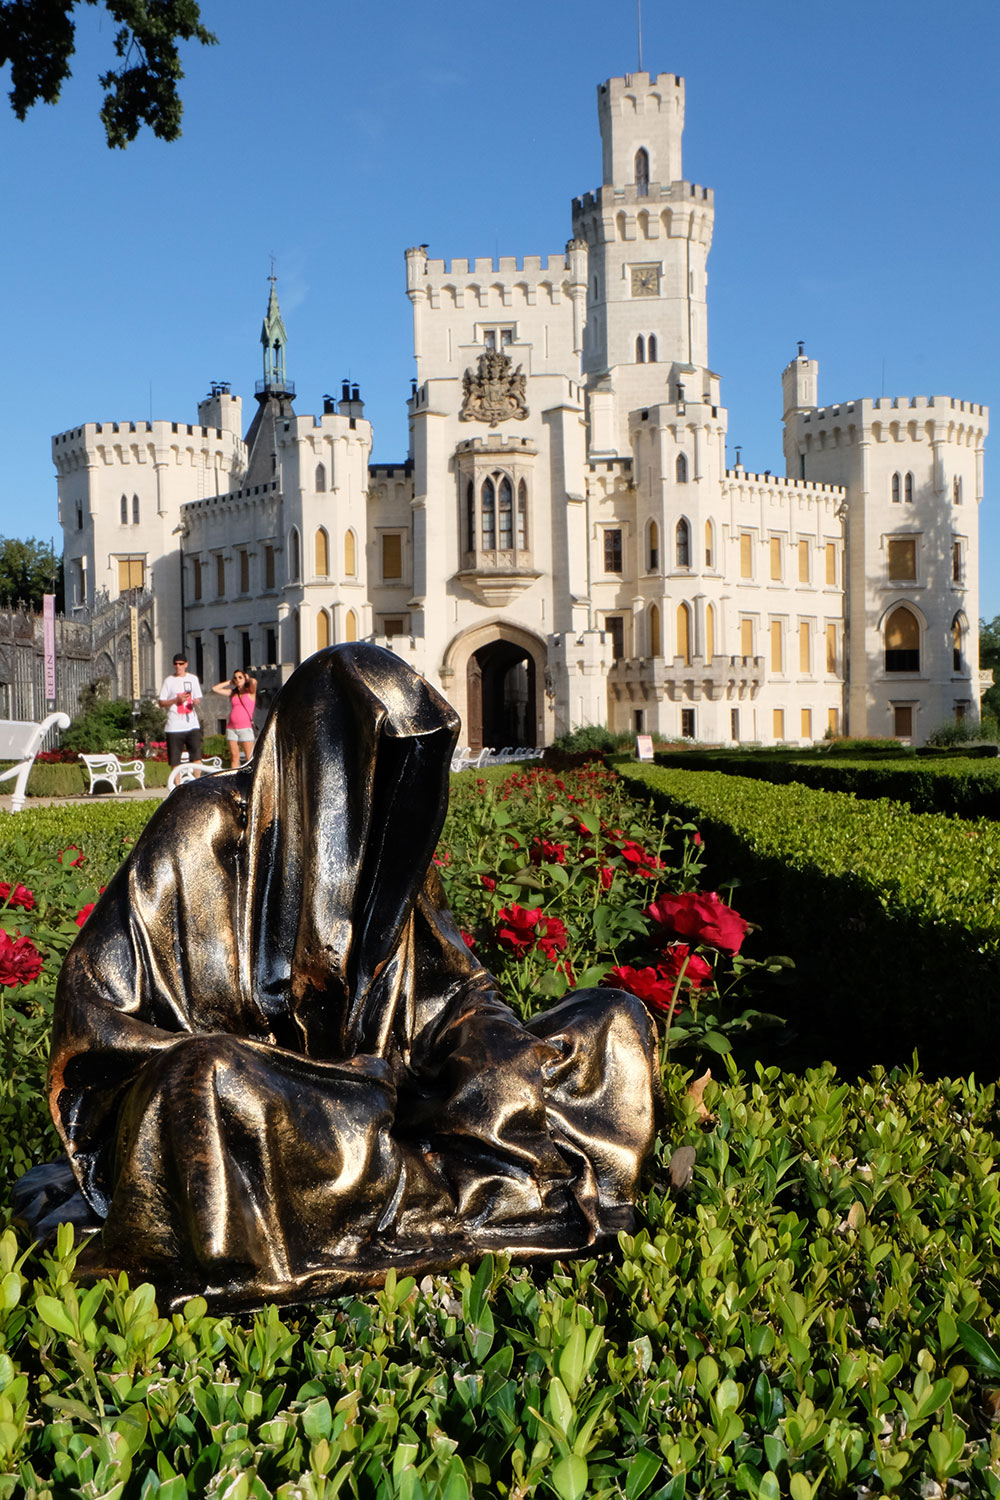 hluboka-castle--czech-republic-guardians-of-time-manfred-kili-kielnhofer-contemporary-fine-art-sculpture-statue-arts-design-modern-photography-6559